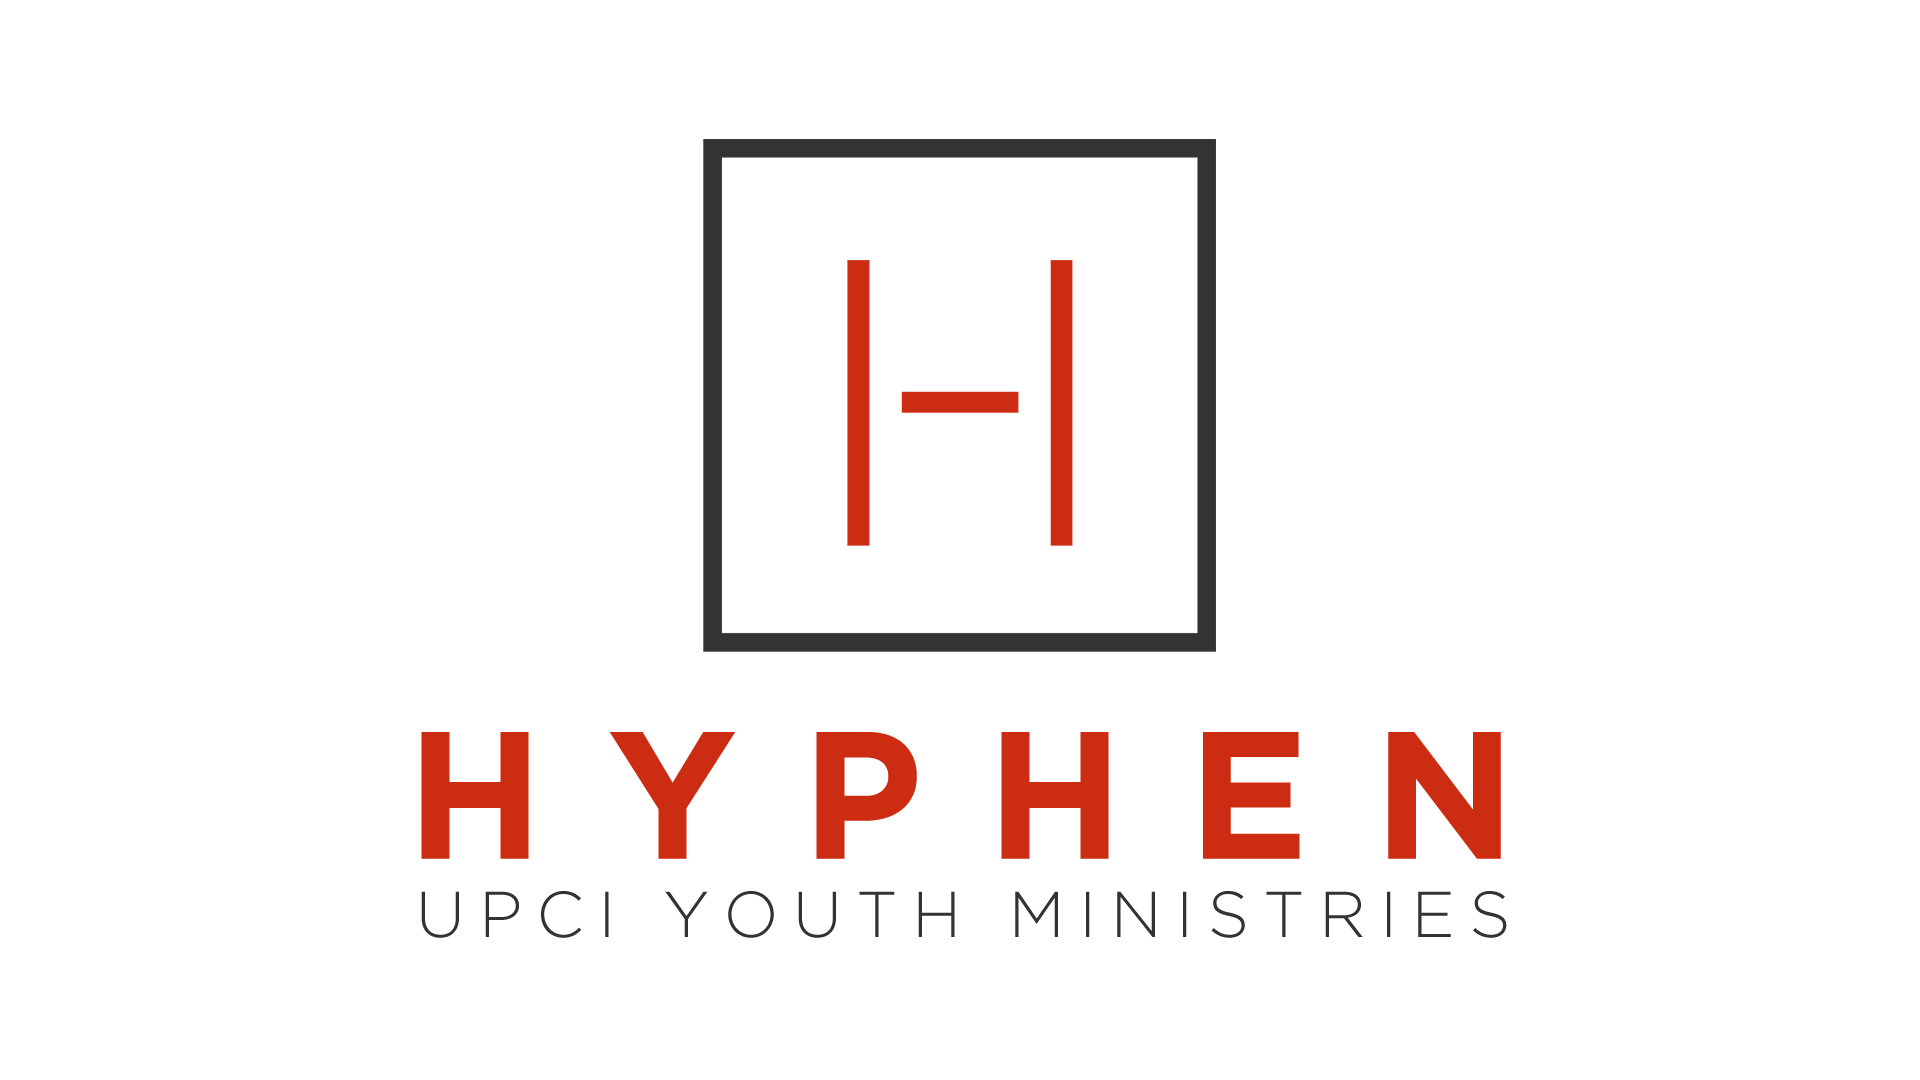 HYPHEN UPCI Youth Ministries